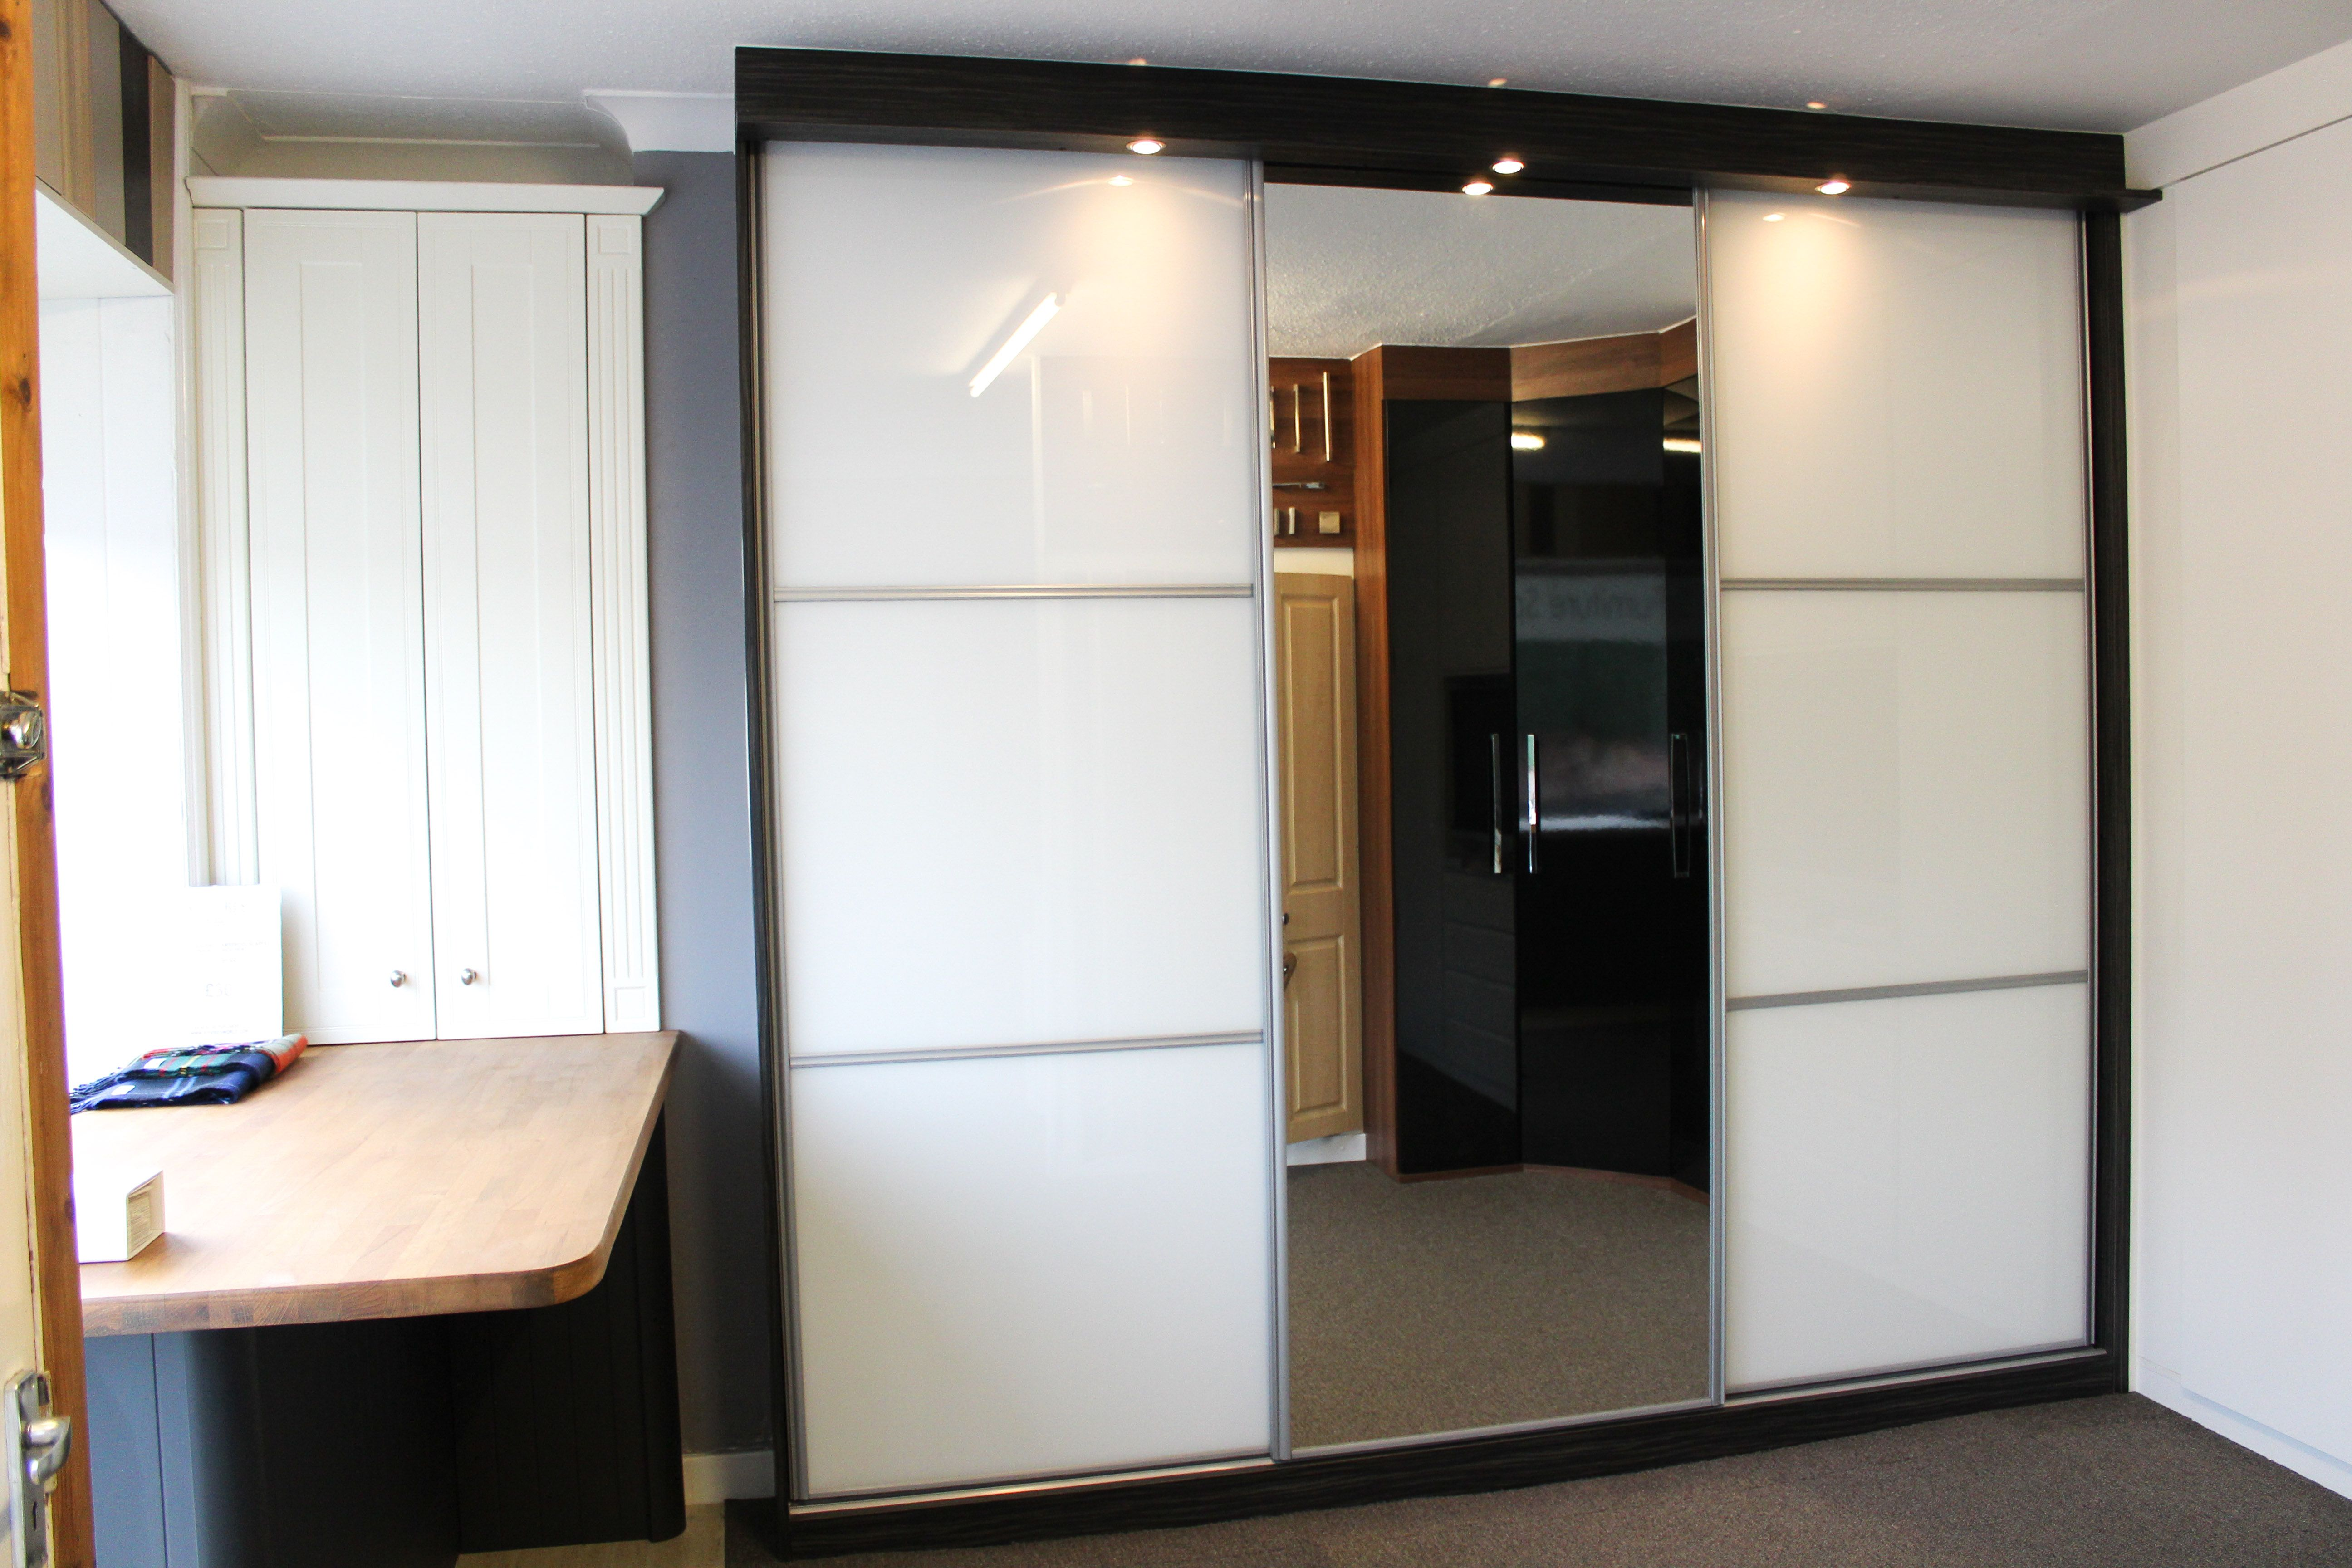 High Gloss White Sliding Doors Split Into 3 Pieces And A Full Mirror